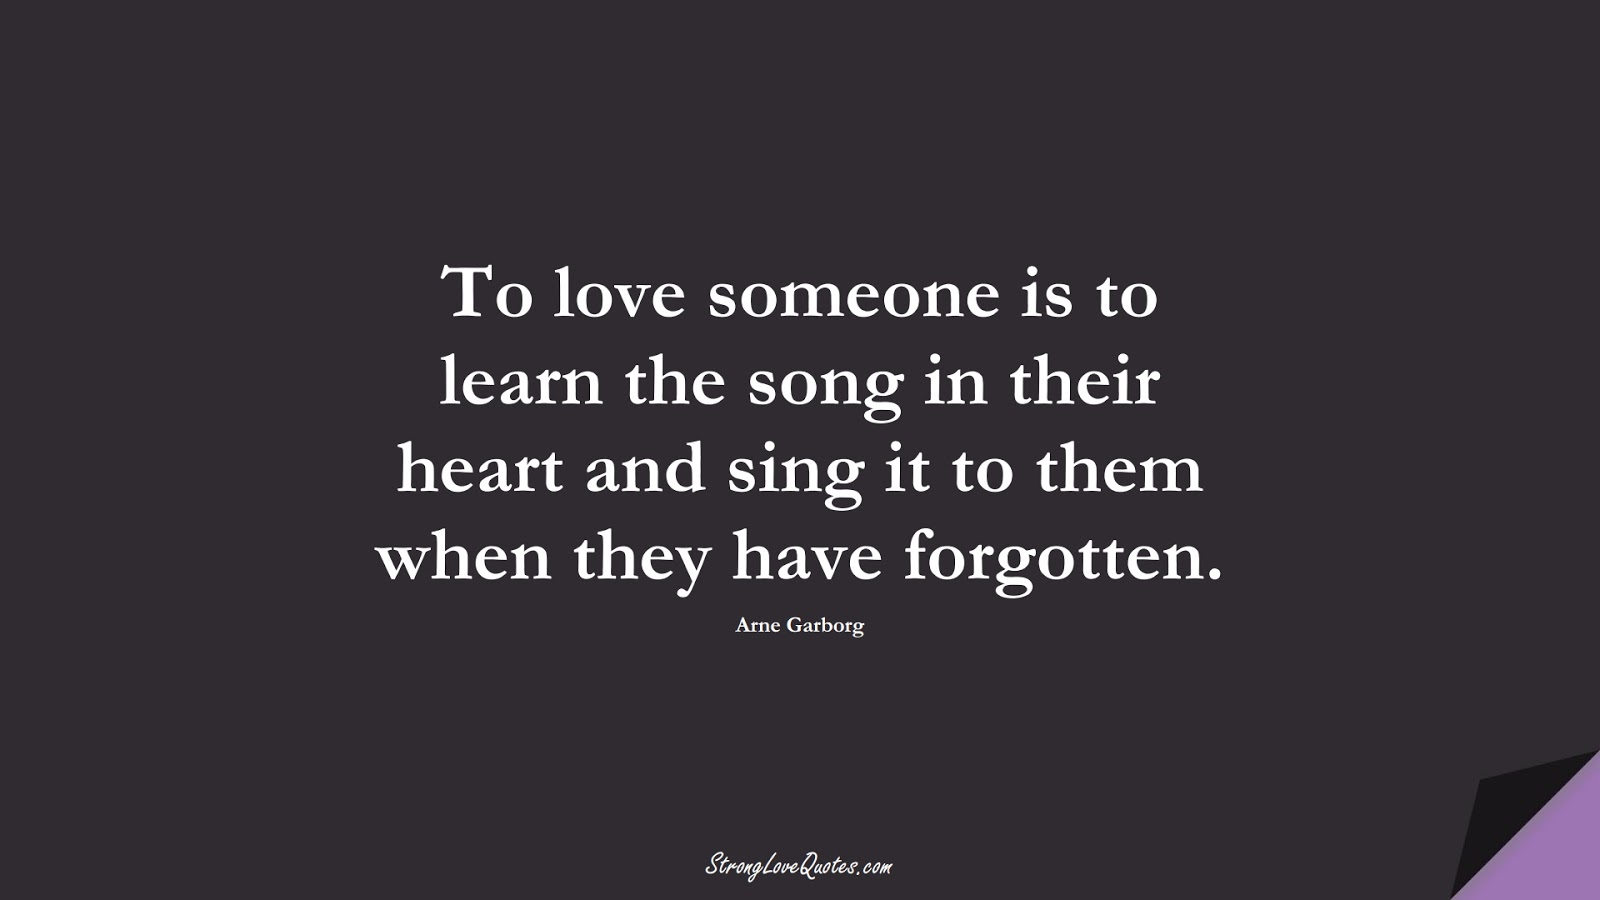 To love someone is to learn the song in their heart and sing it to them when they have forgotten. (Arne Garborg);  #LearningQuotes